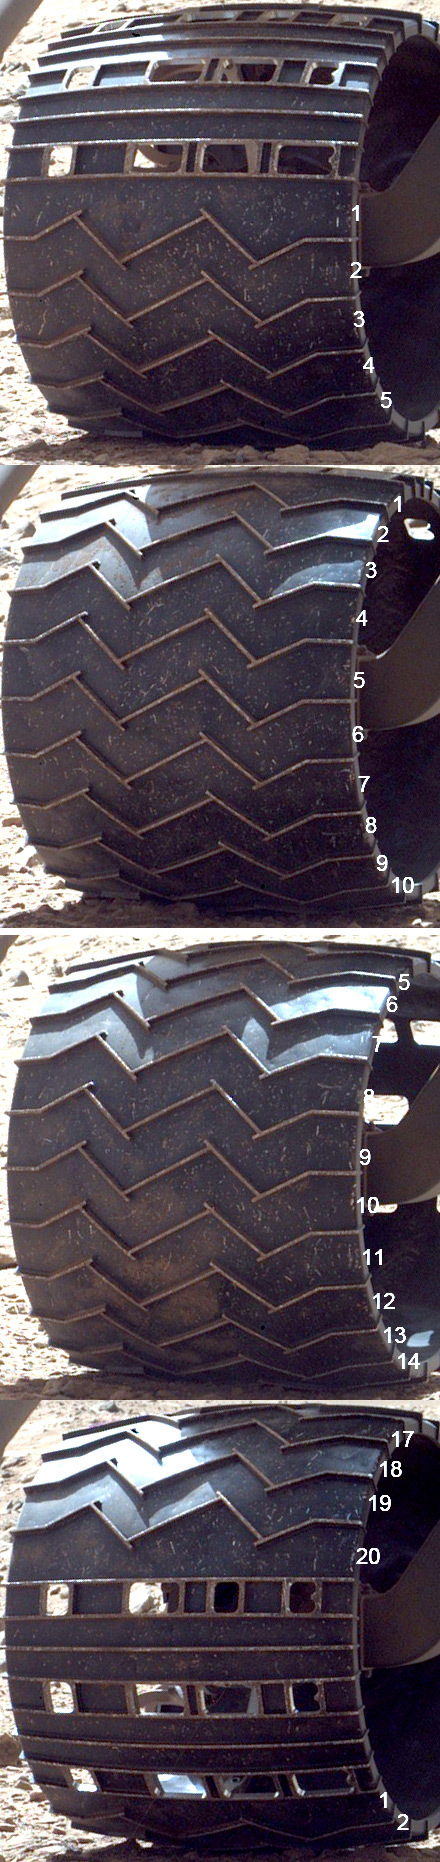 Curiosity wheel survey, sol 513: right rear wheel